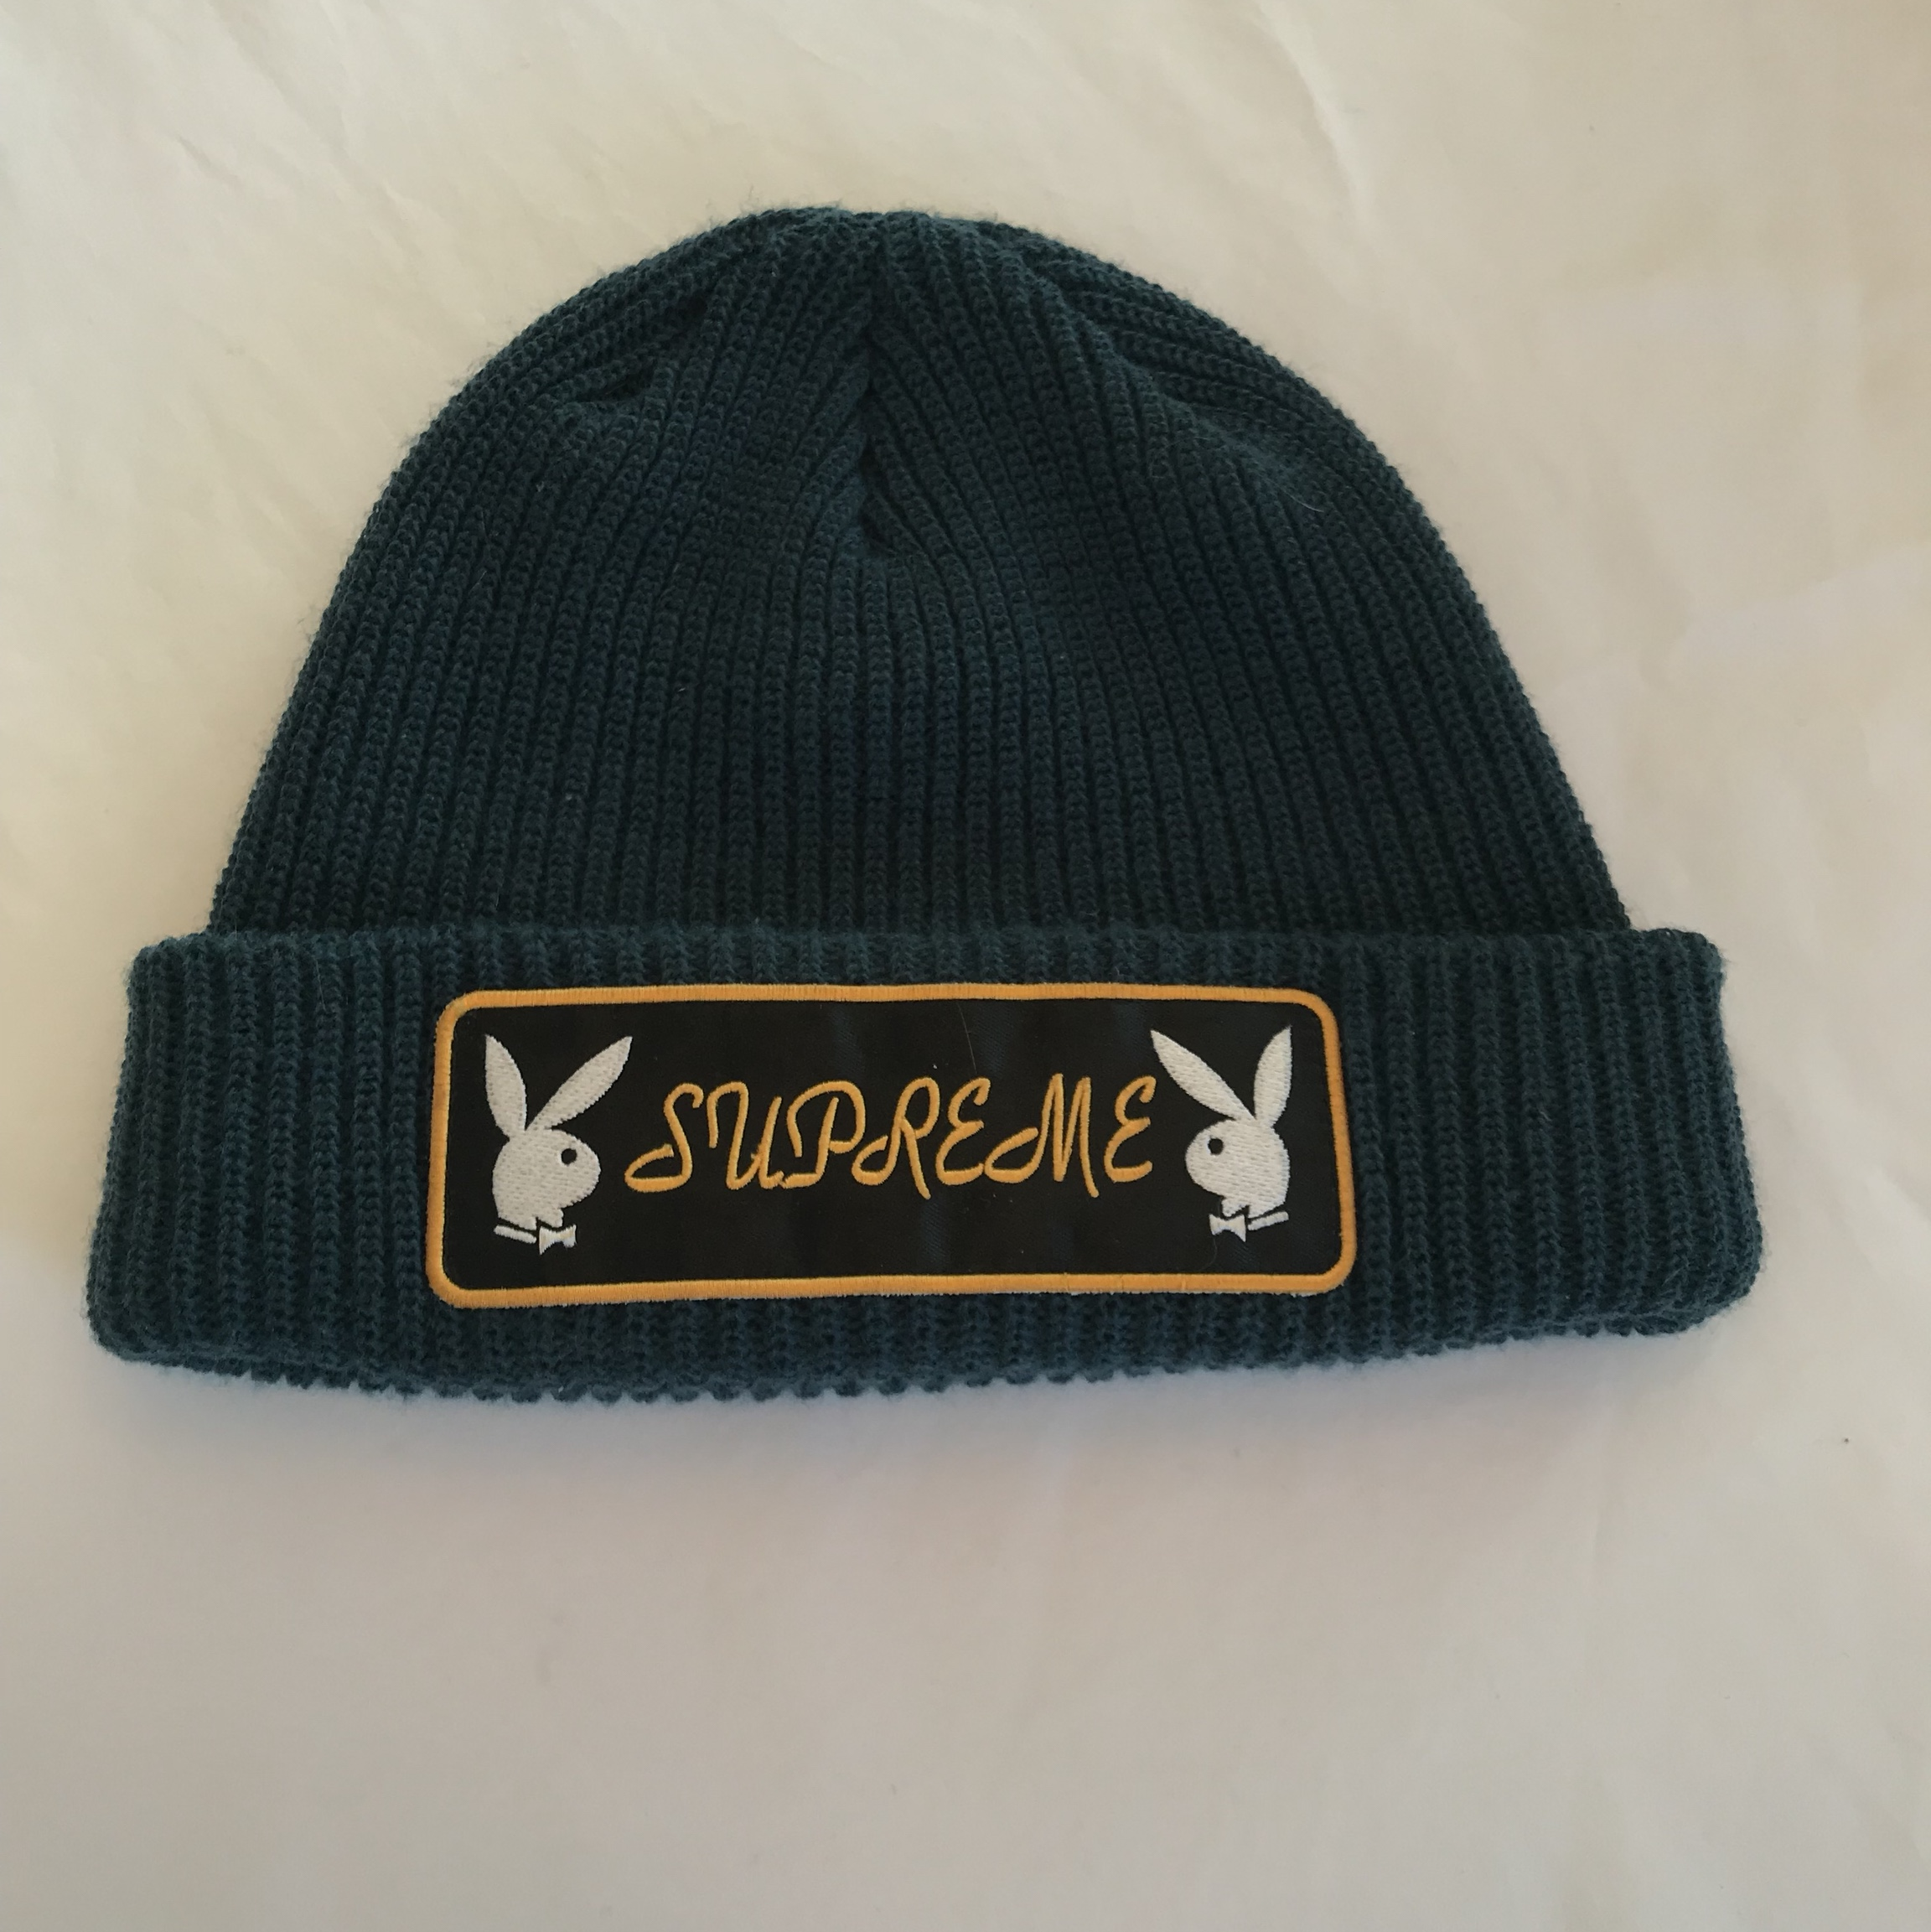 2d250f5942ce7 Supreme Playboy Beanie in Blue. 10 10 Condition  supreme - Depop